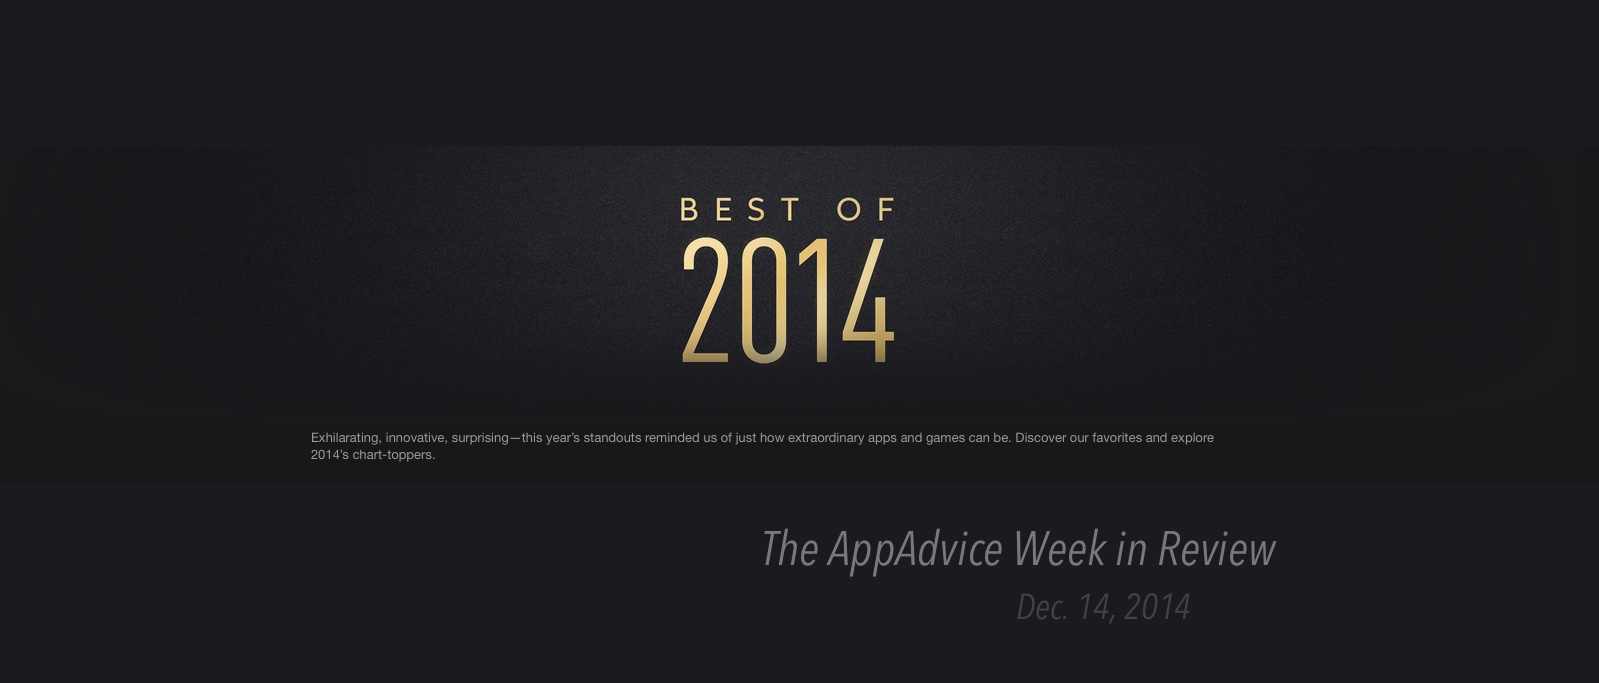 The AppAdvice week in review: Apple unveils the best apps and games of 2014